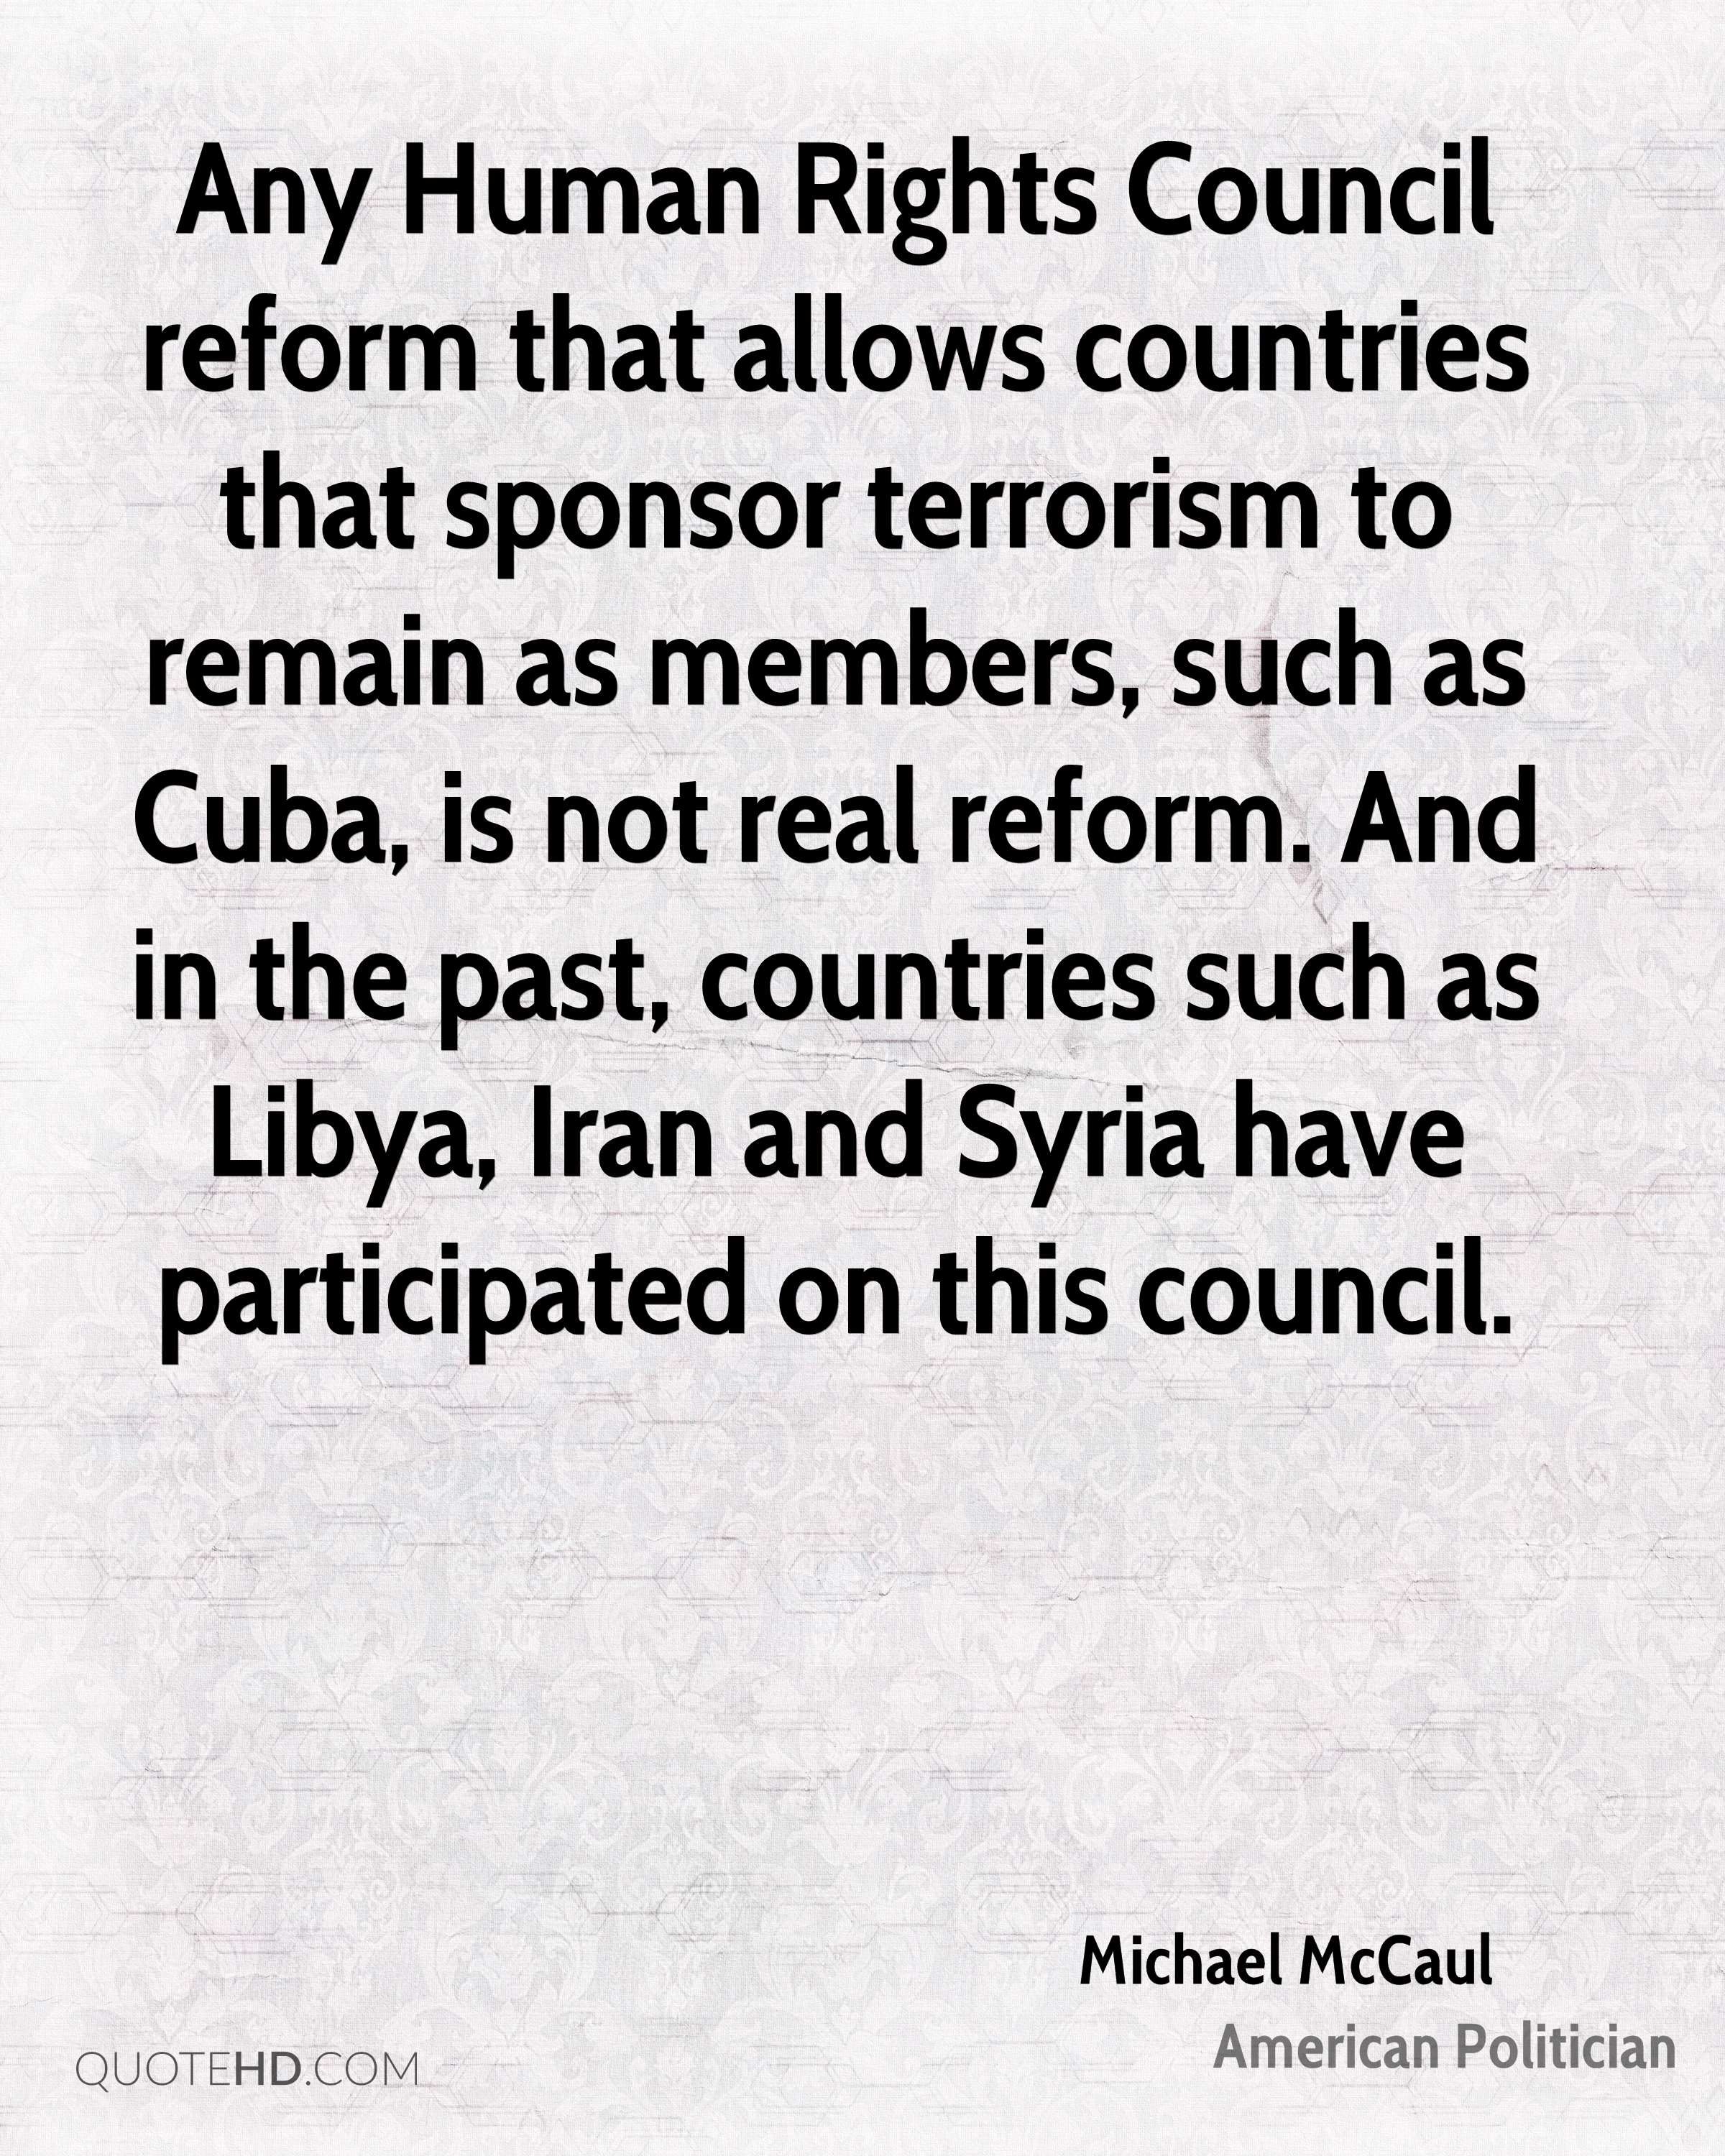 Any Human Rights Council reform that allows countries that sponsor terrorism to remain as members, such as Cuba, is not real reform. And in the past, countries such as Libya, Iran and Syria have participated on this council.